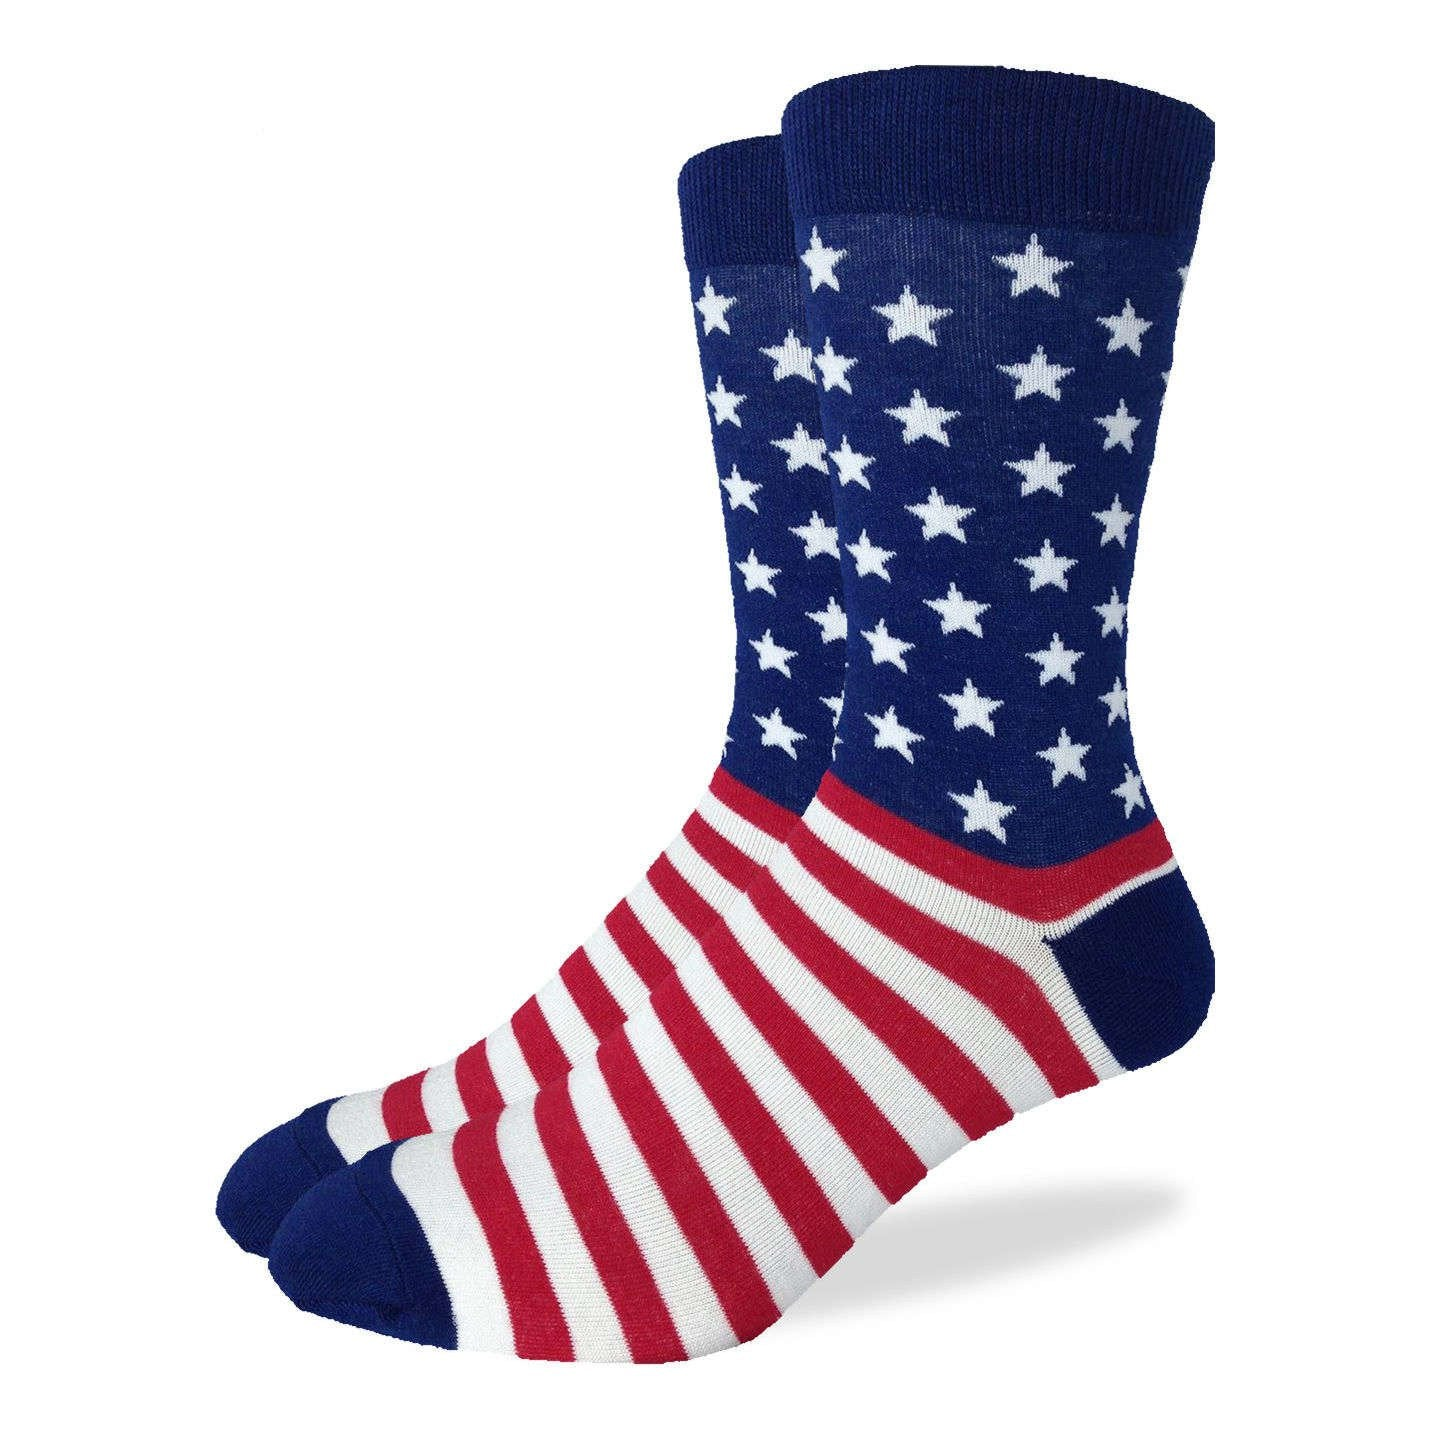 Men's American Flag Socks - Good Luck Sock